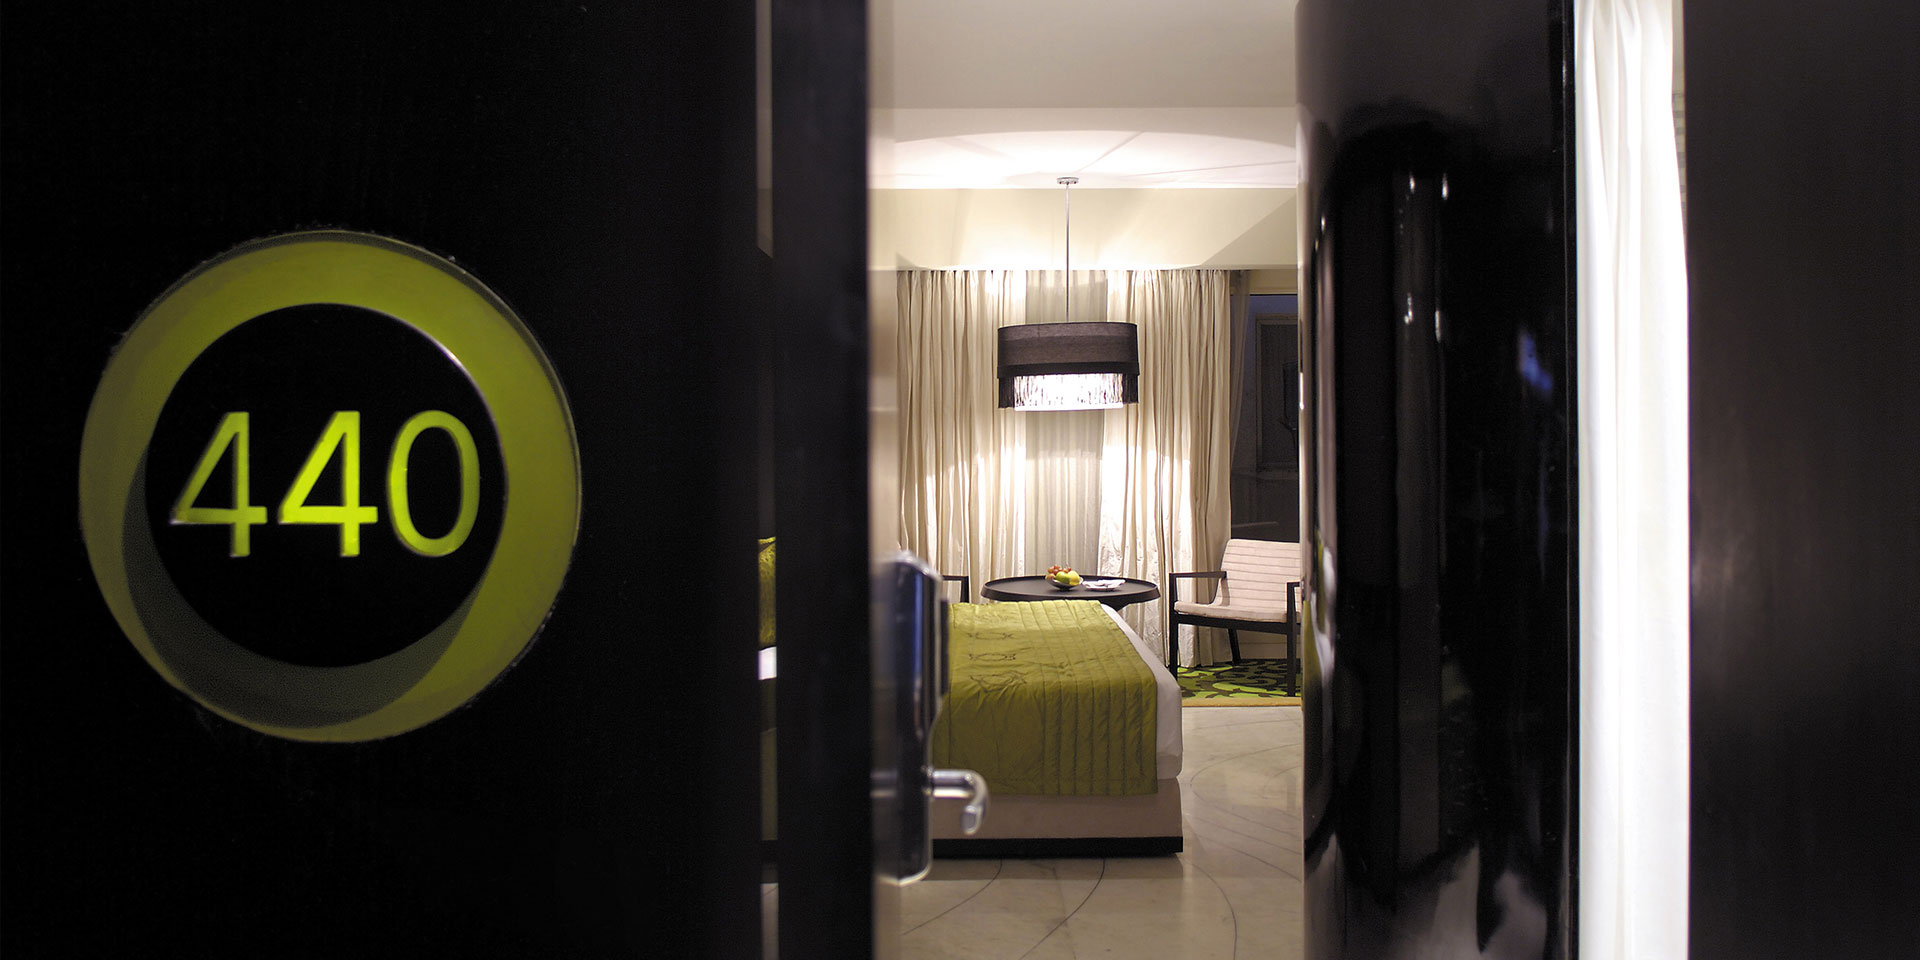 TheParkKolkata-kolkata-India-Asia-rooms.jpg